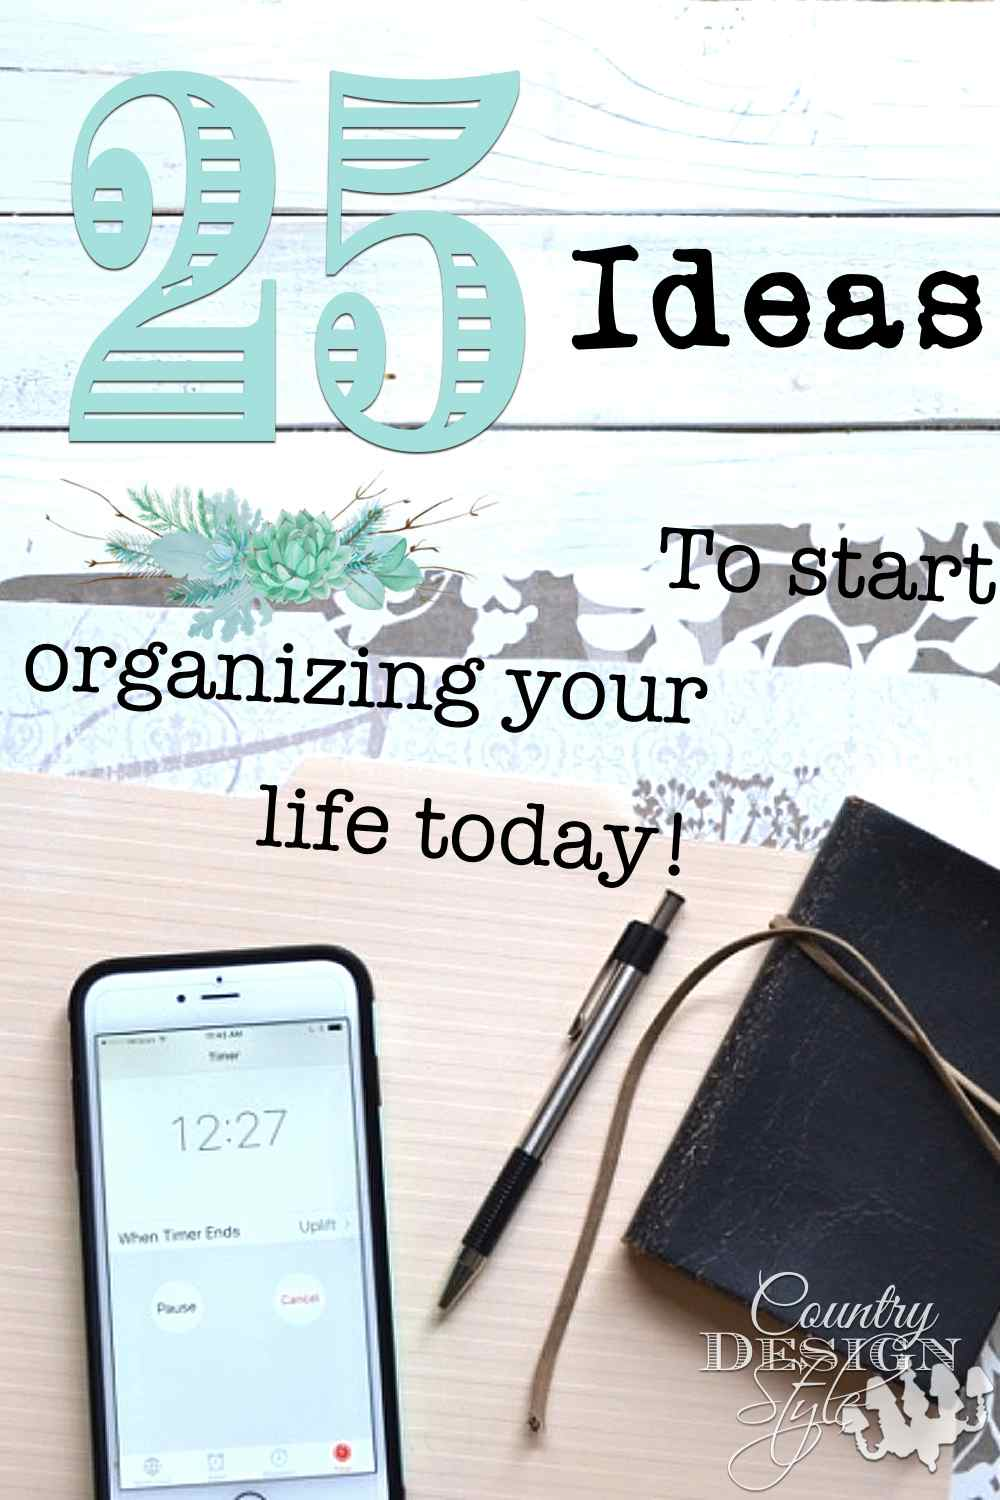 25 things to start Organizing today Pin | Country Design Style | countrydesignstyle.com